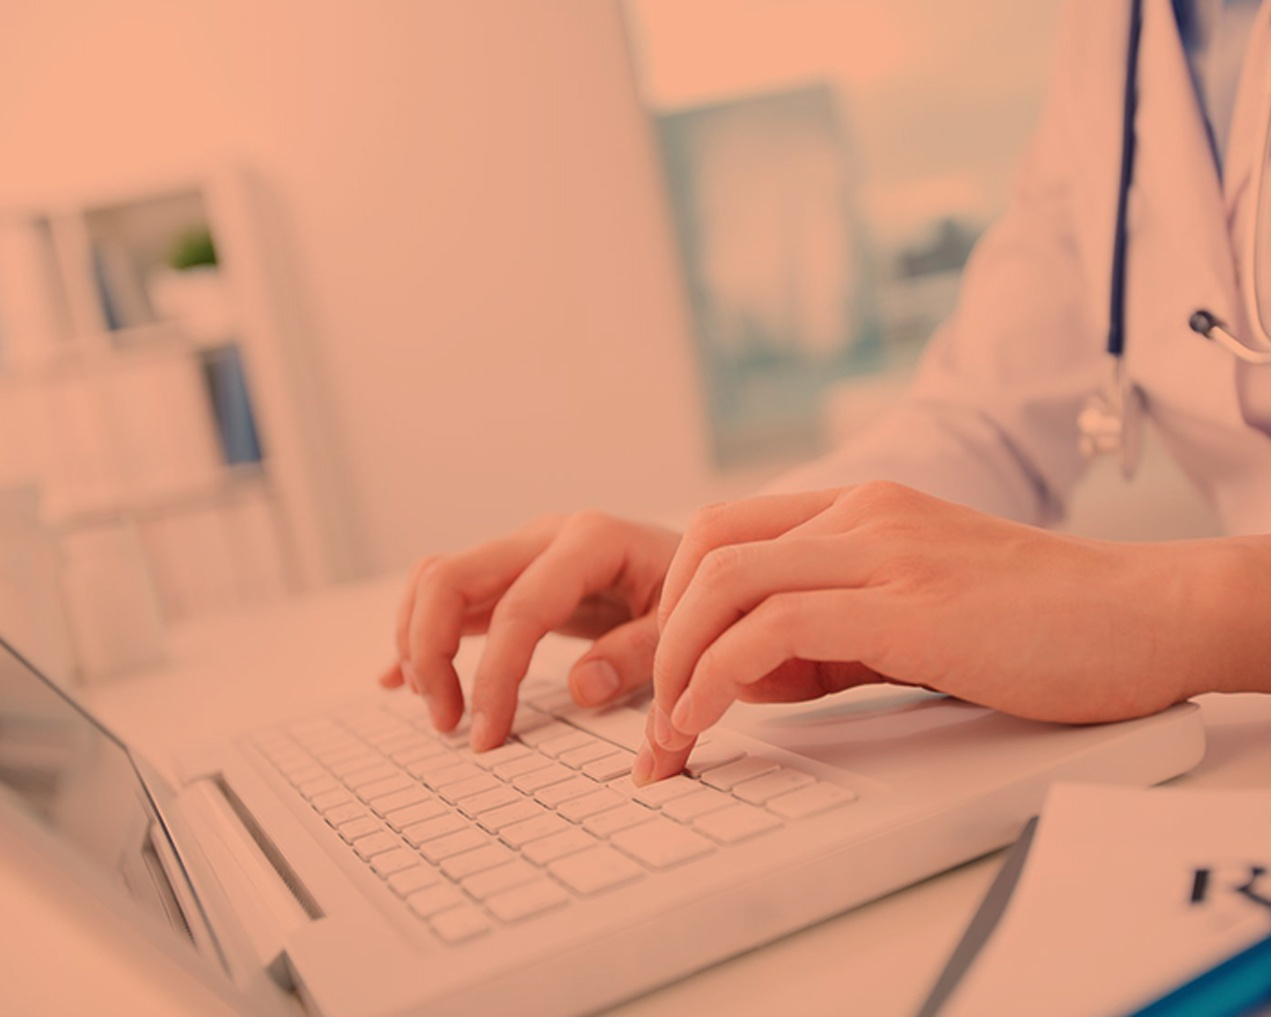 Email Marketing Tips to Stand Out in Patients' Inboxes